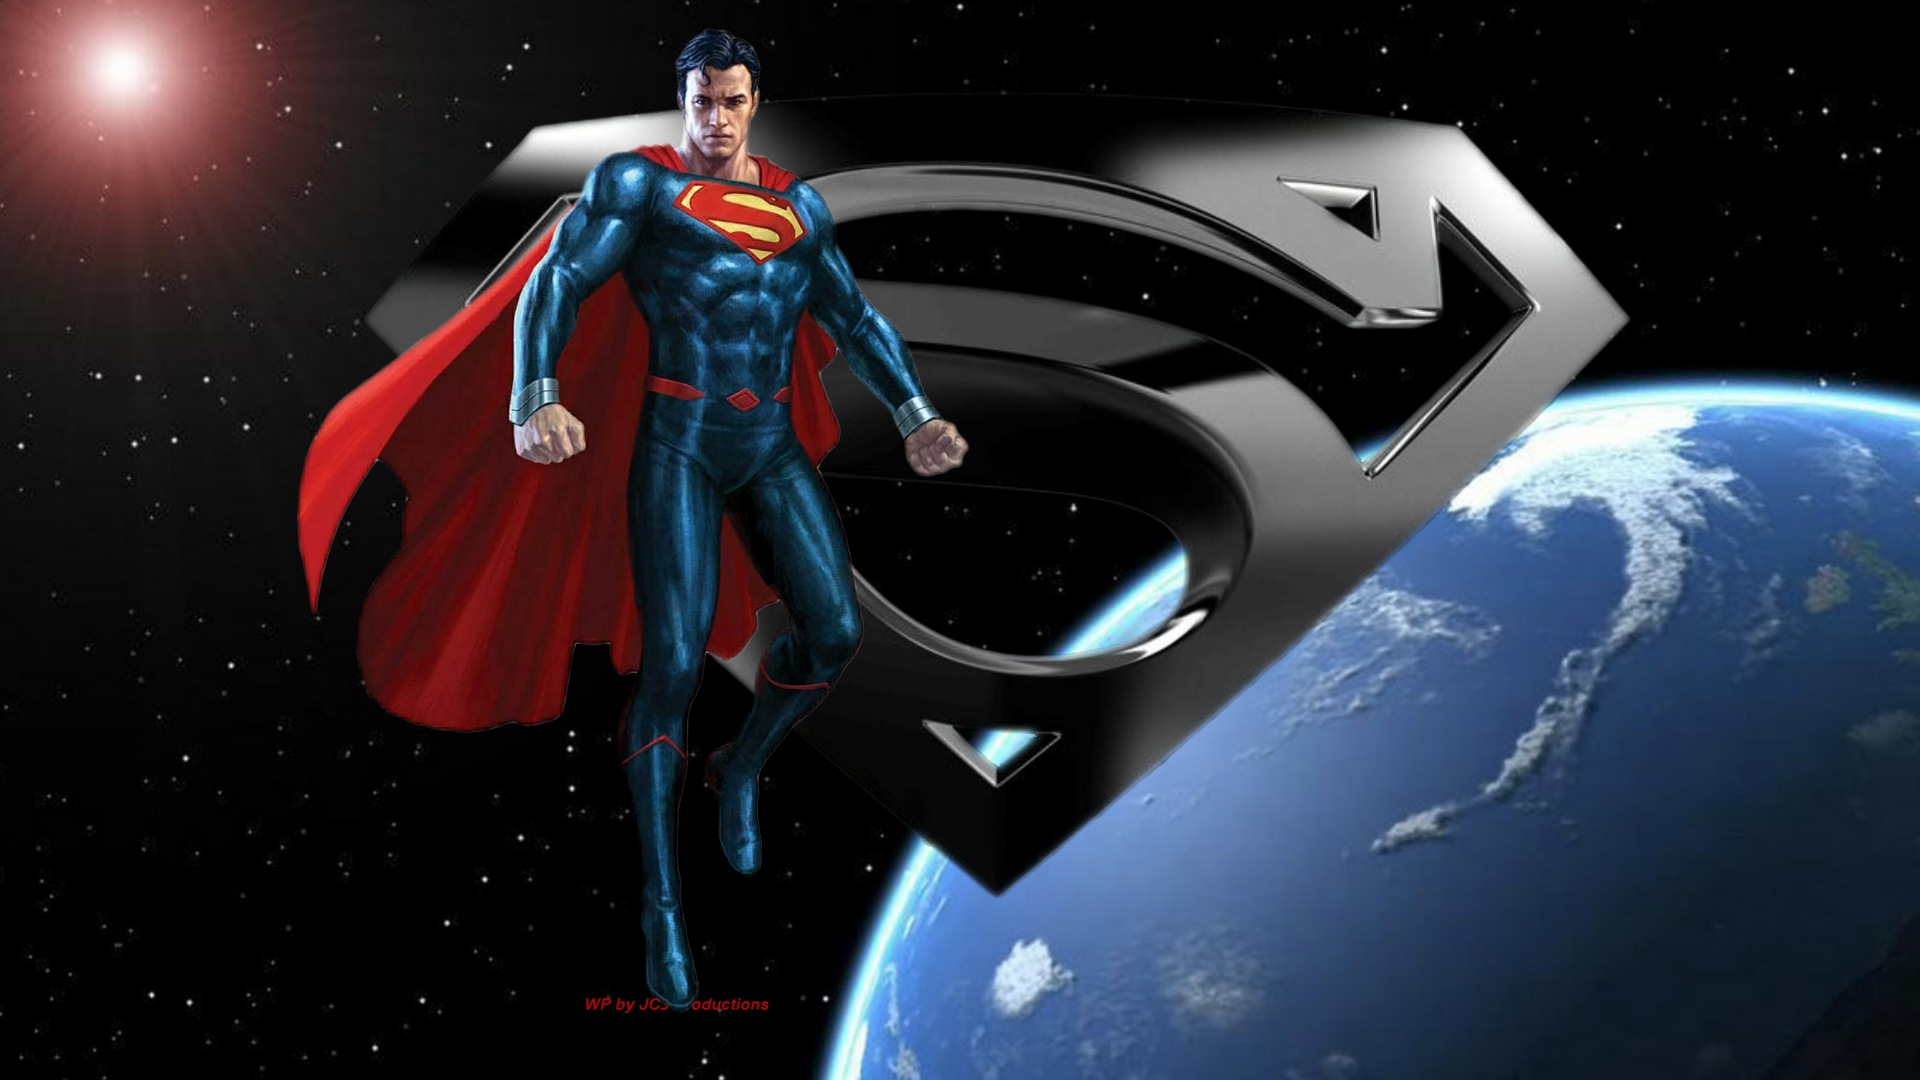 dc comics images superman in space 3c hd wallpaper and background